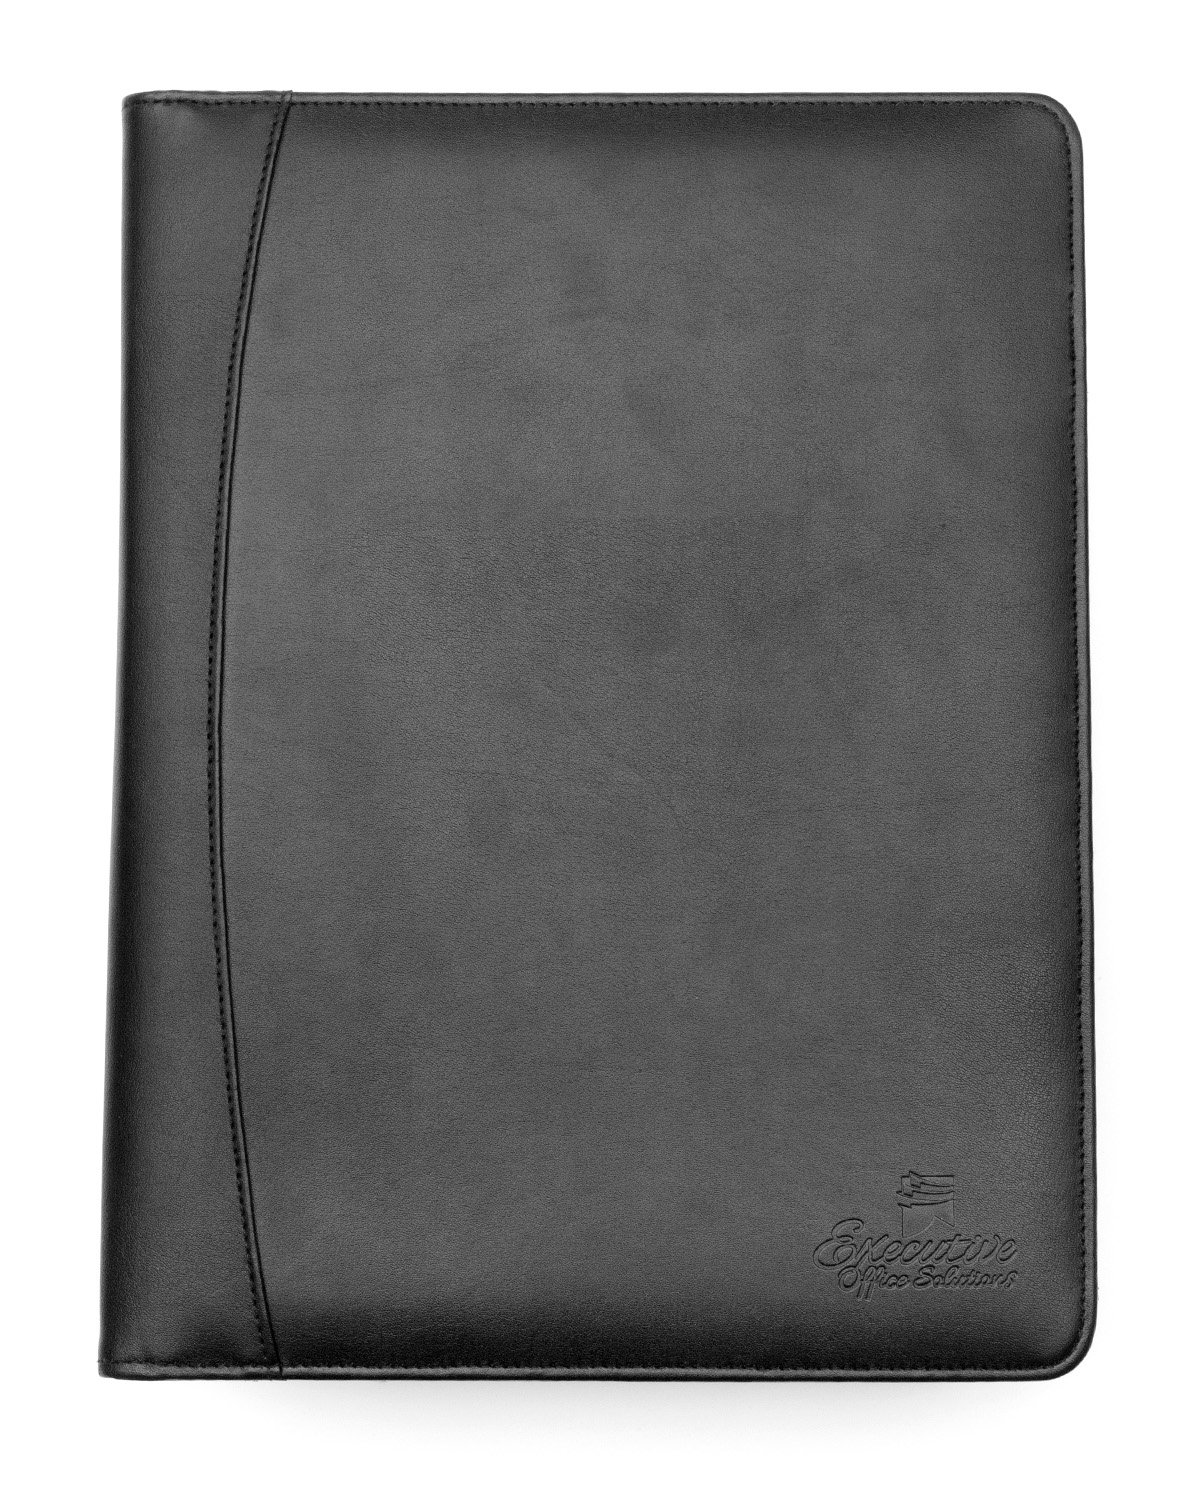 Professional Business Padfolio/Portfolio Case Organizer Resume/Interview Folder Synthetic Leather With Refillable Letter Size Writing Pad - Black